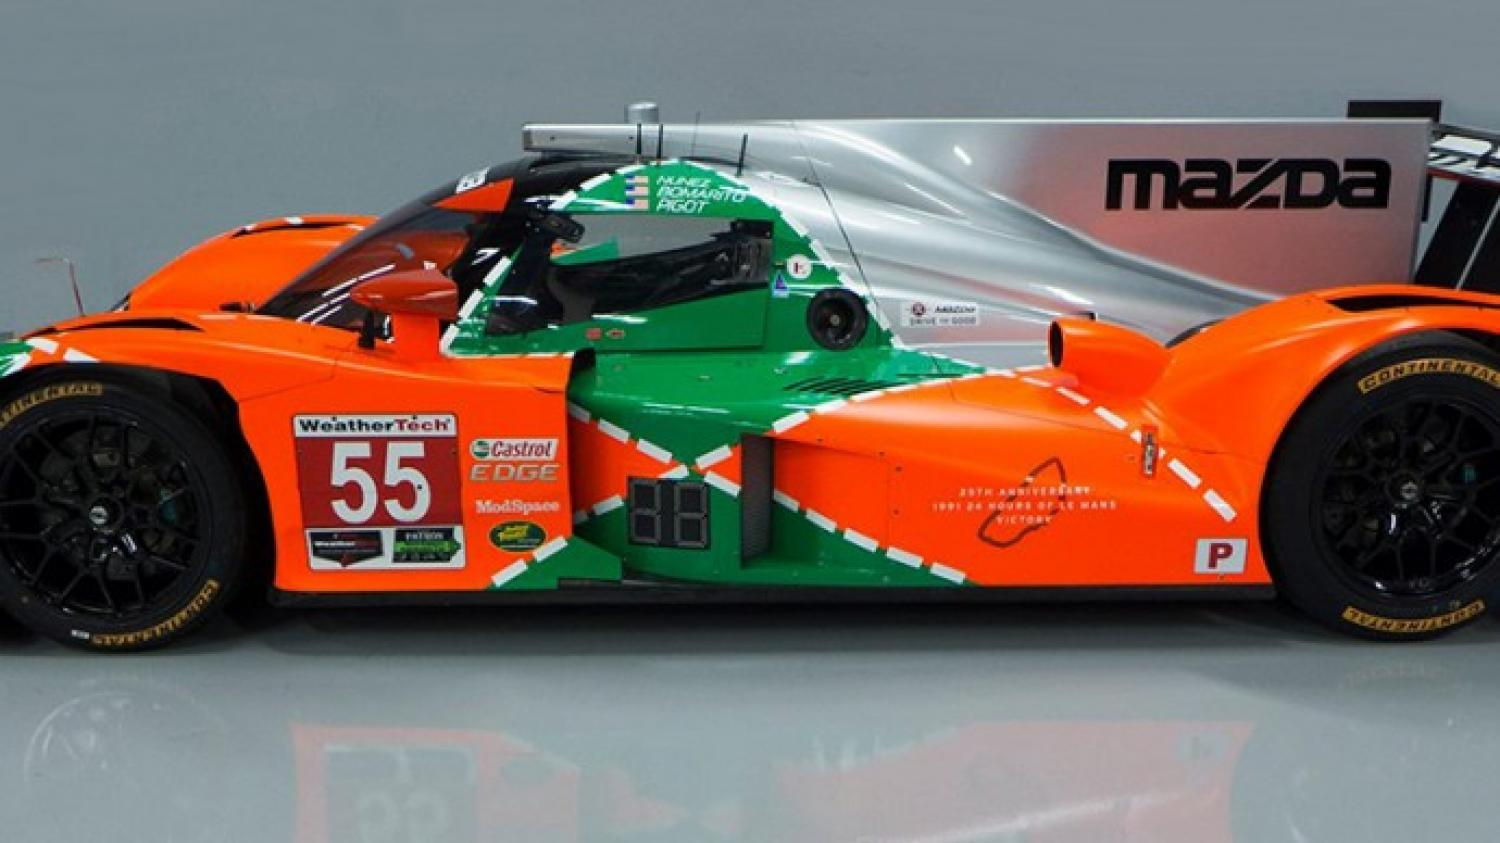 IMSA - Mazda decorates one of its cars in the colours of the 1991 Le Mans winner